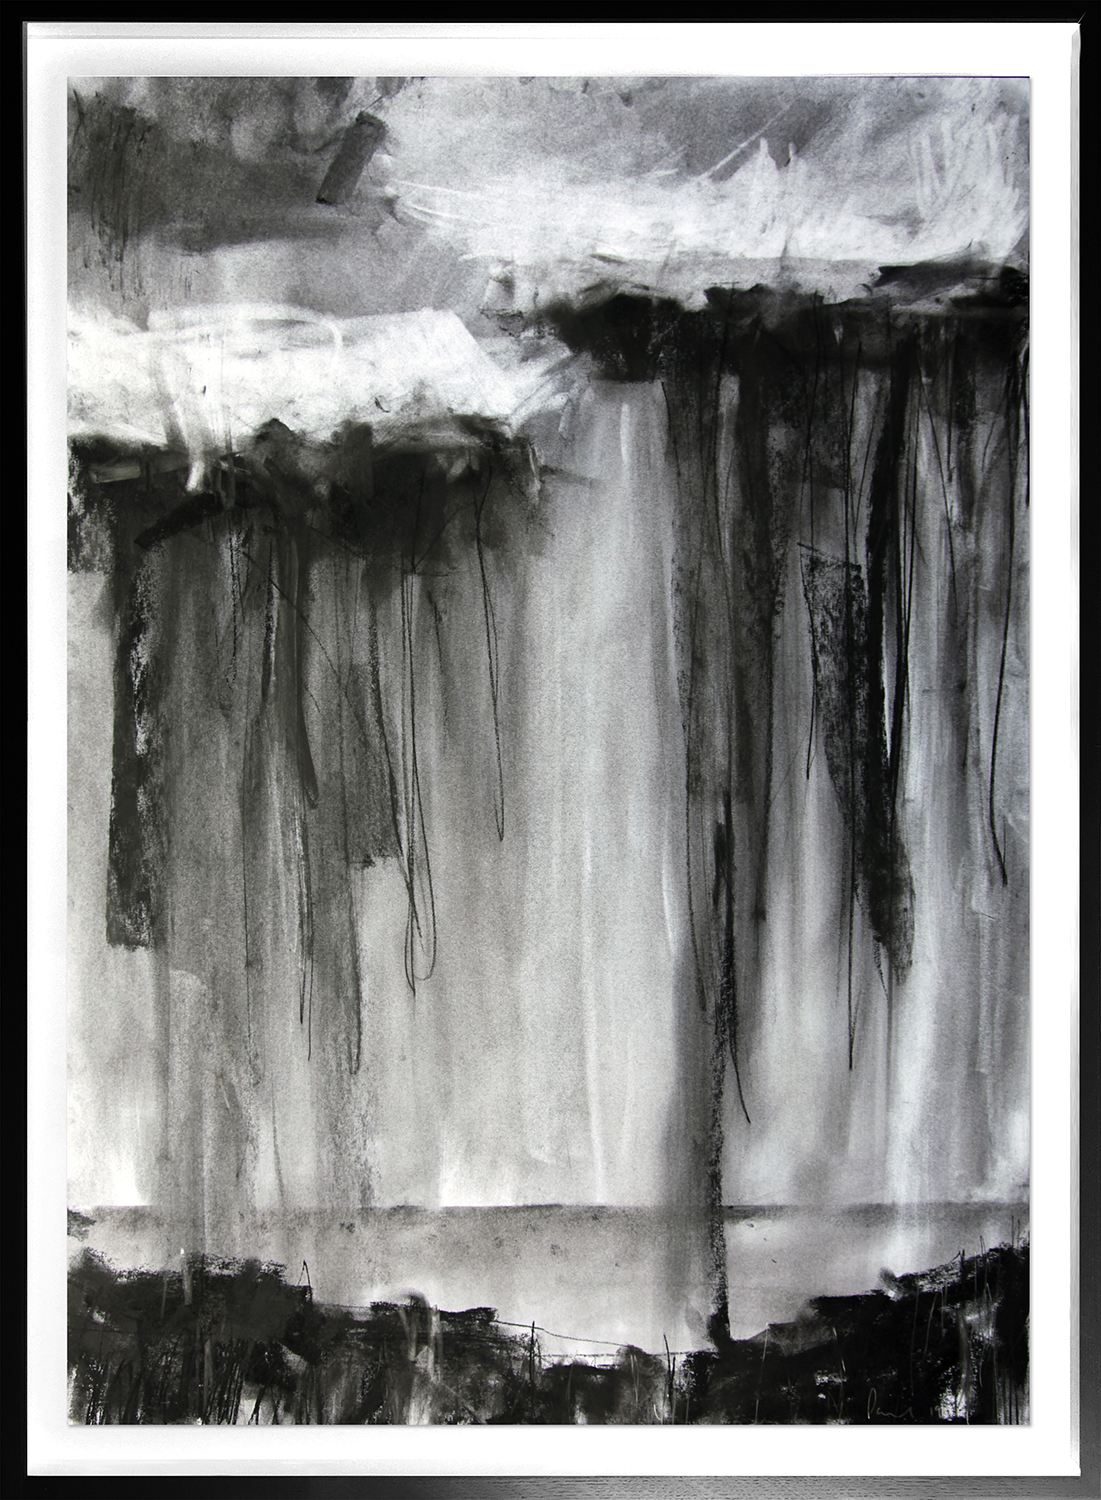 Squall  2019 | 60 x 84cm Charcoal & graphite Signed on front  POA